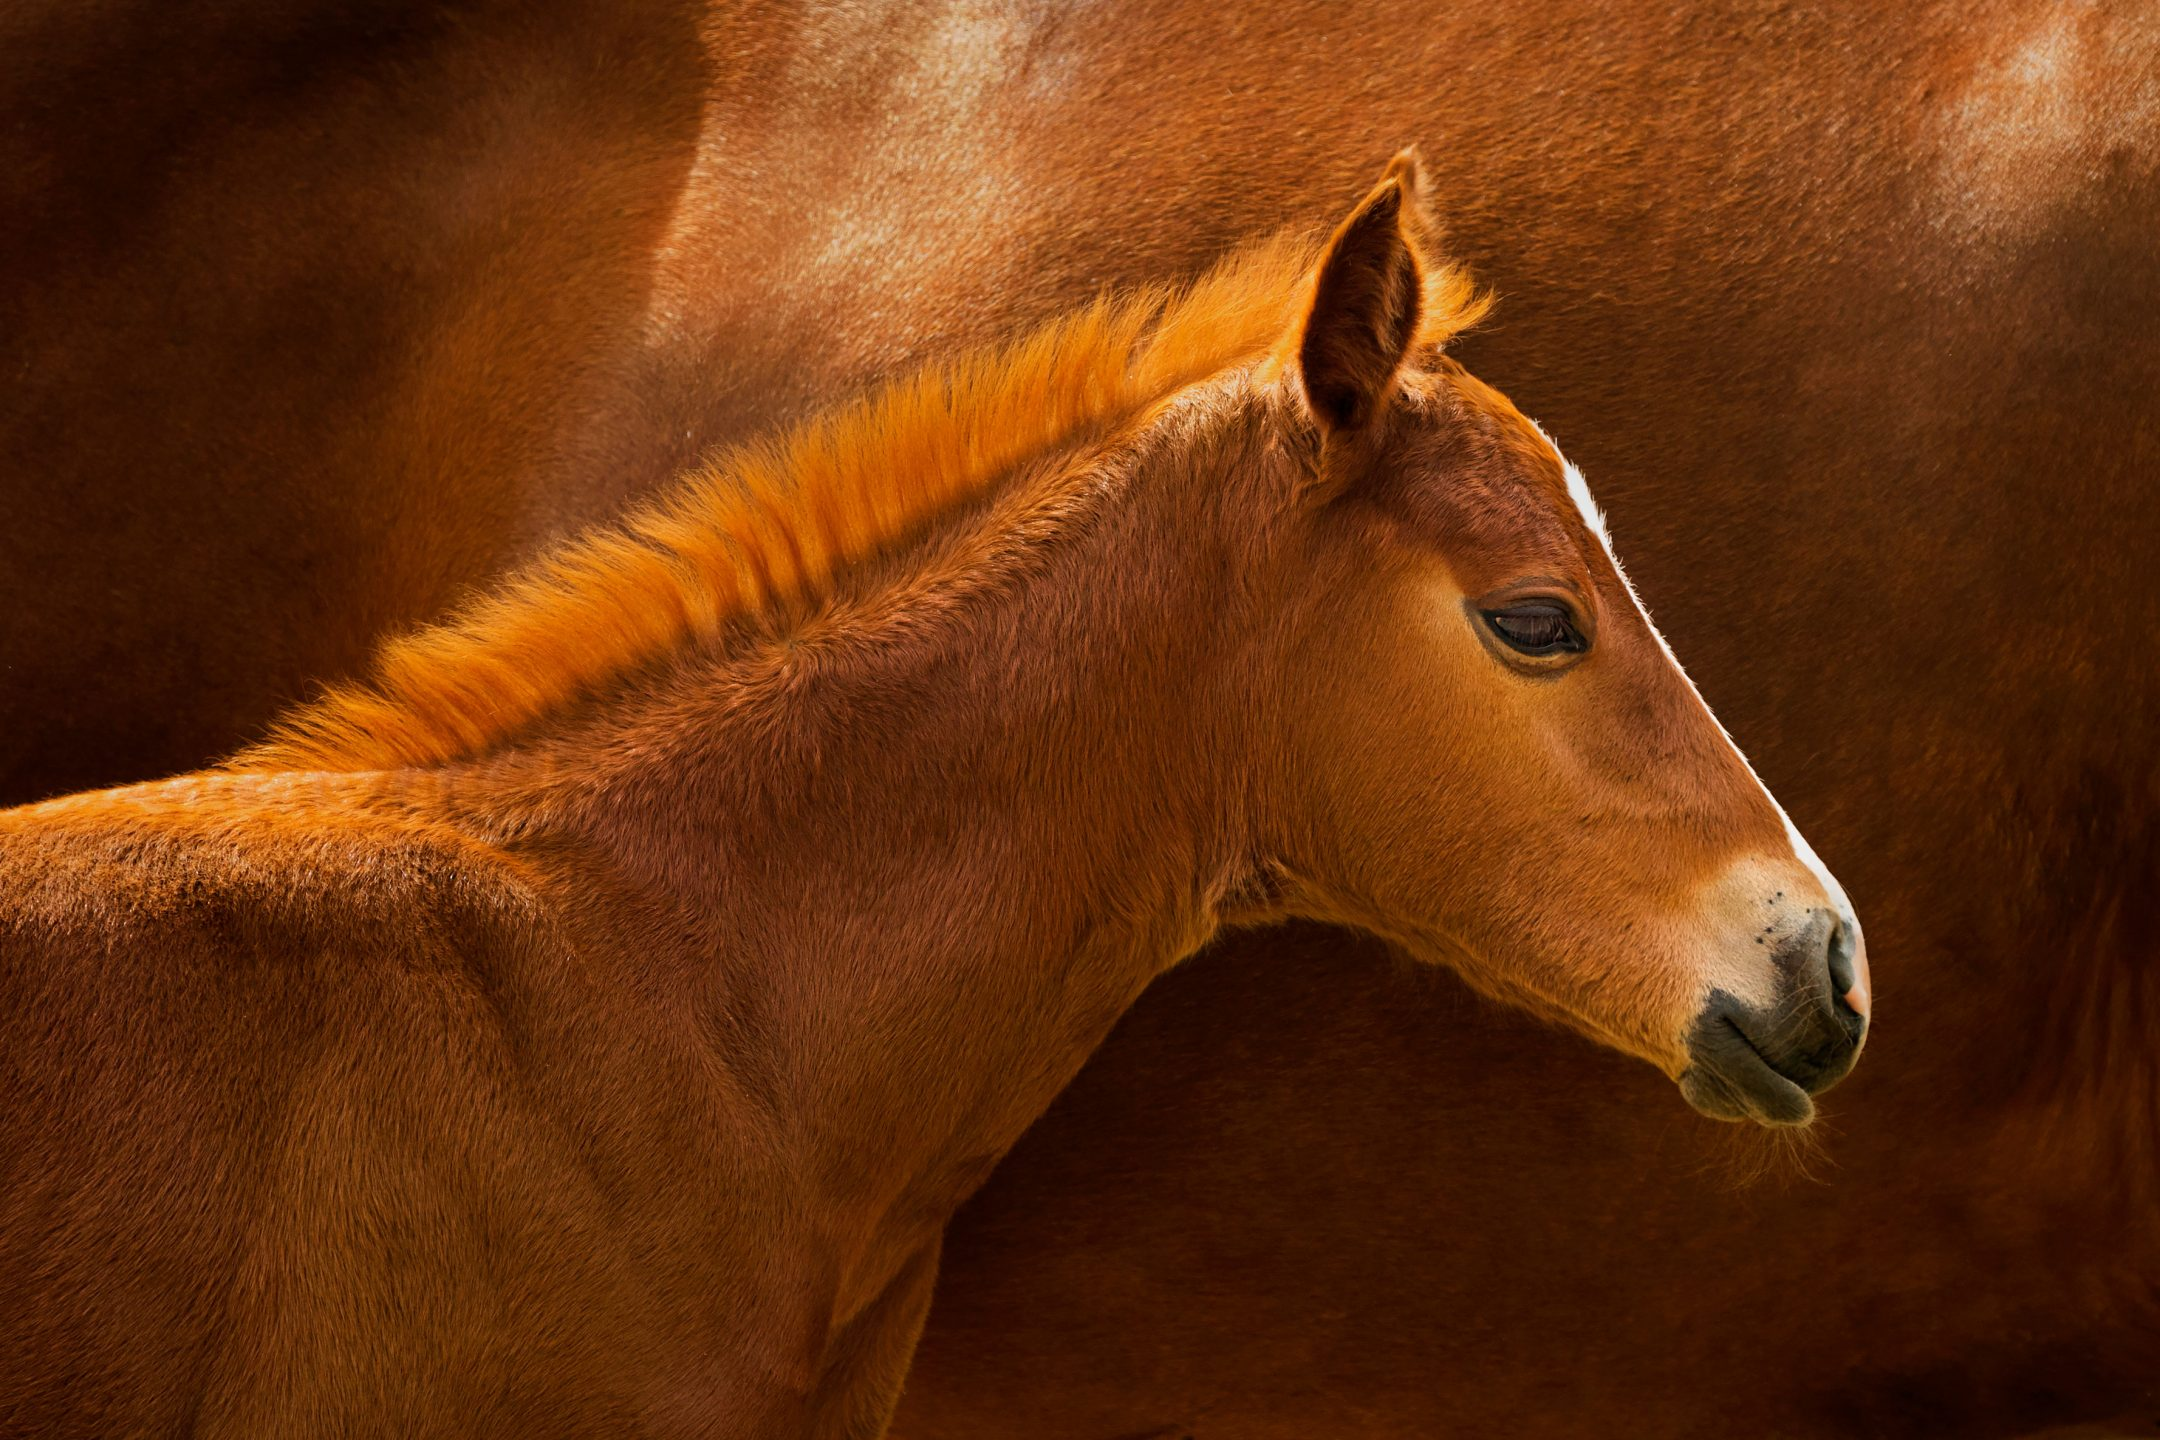 A young foal stands in front of its mother at Cal Poly